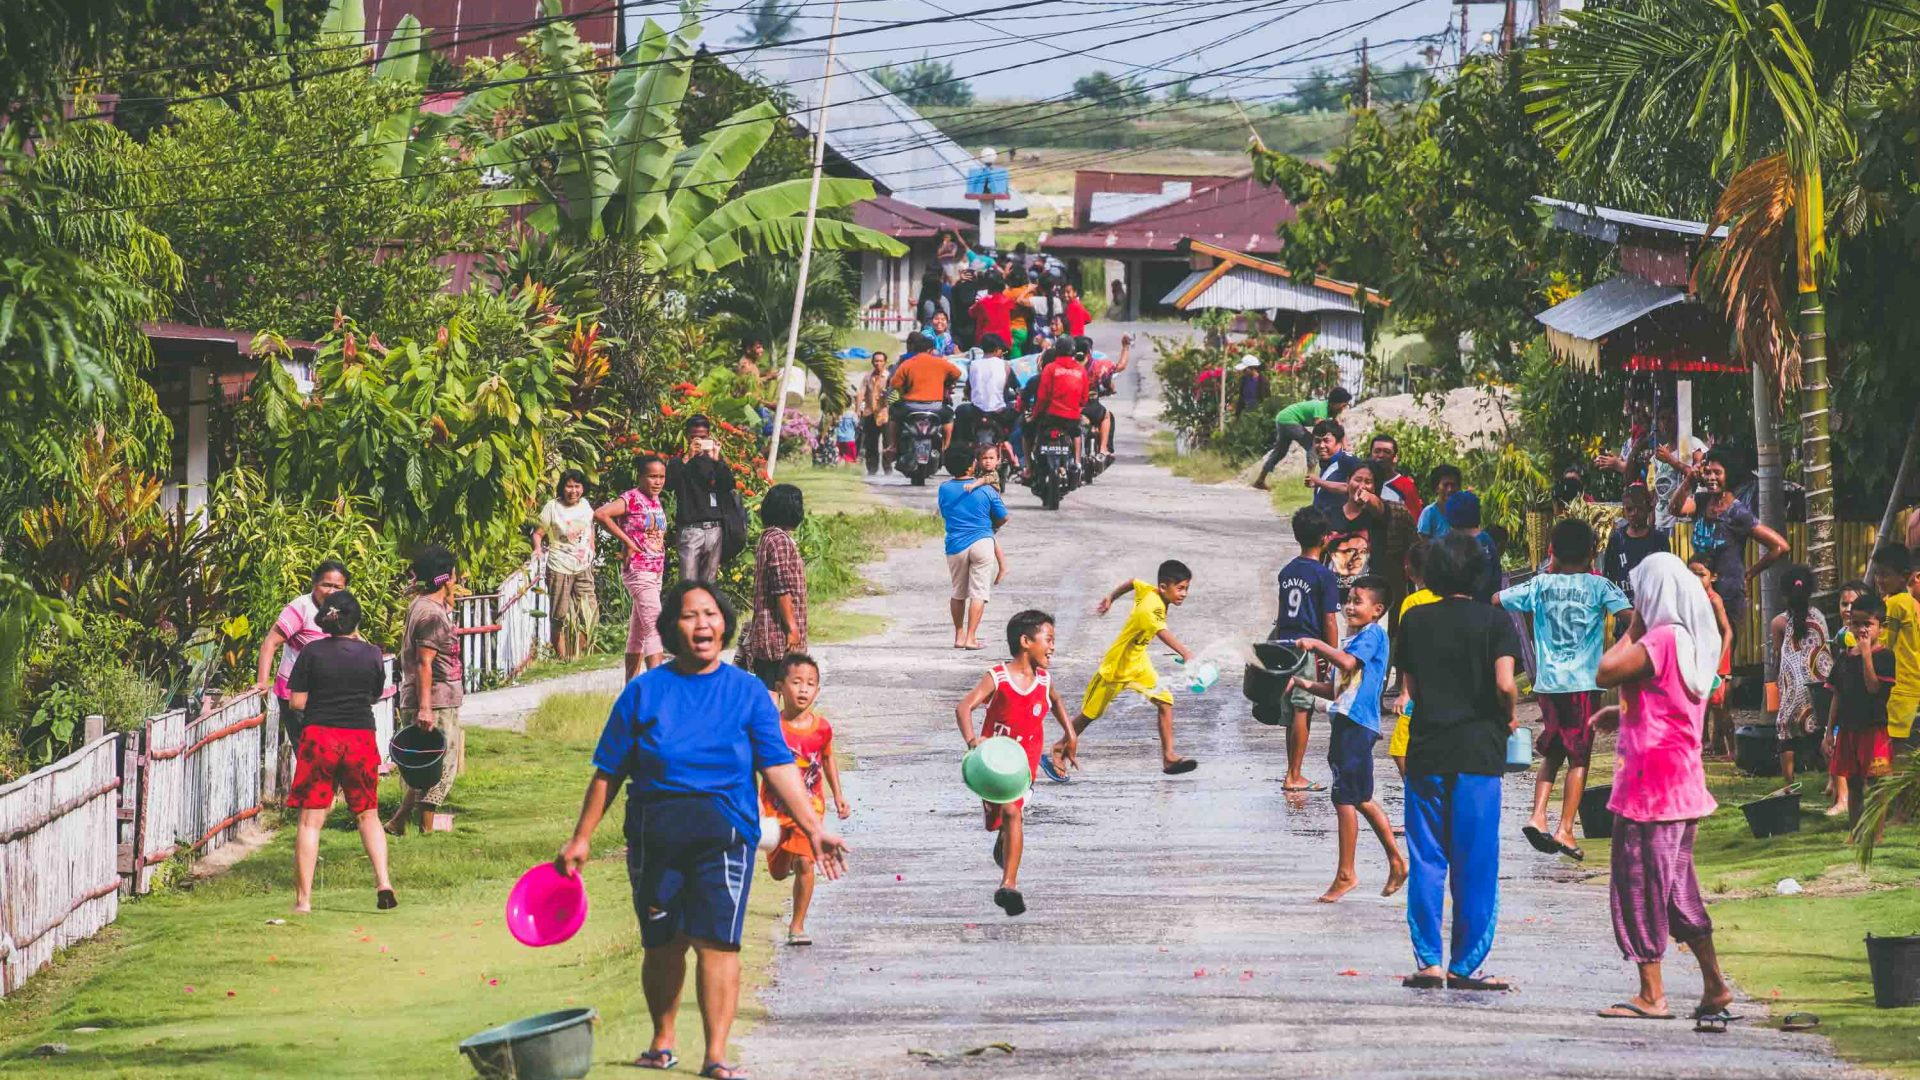 The village of Bancea in Indonesia, awash with color.